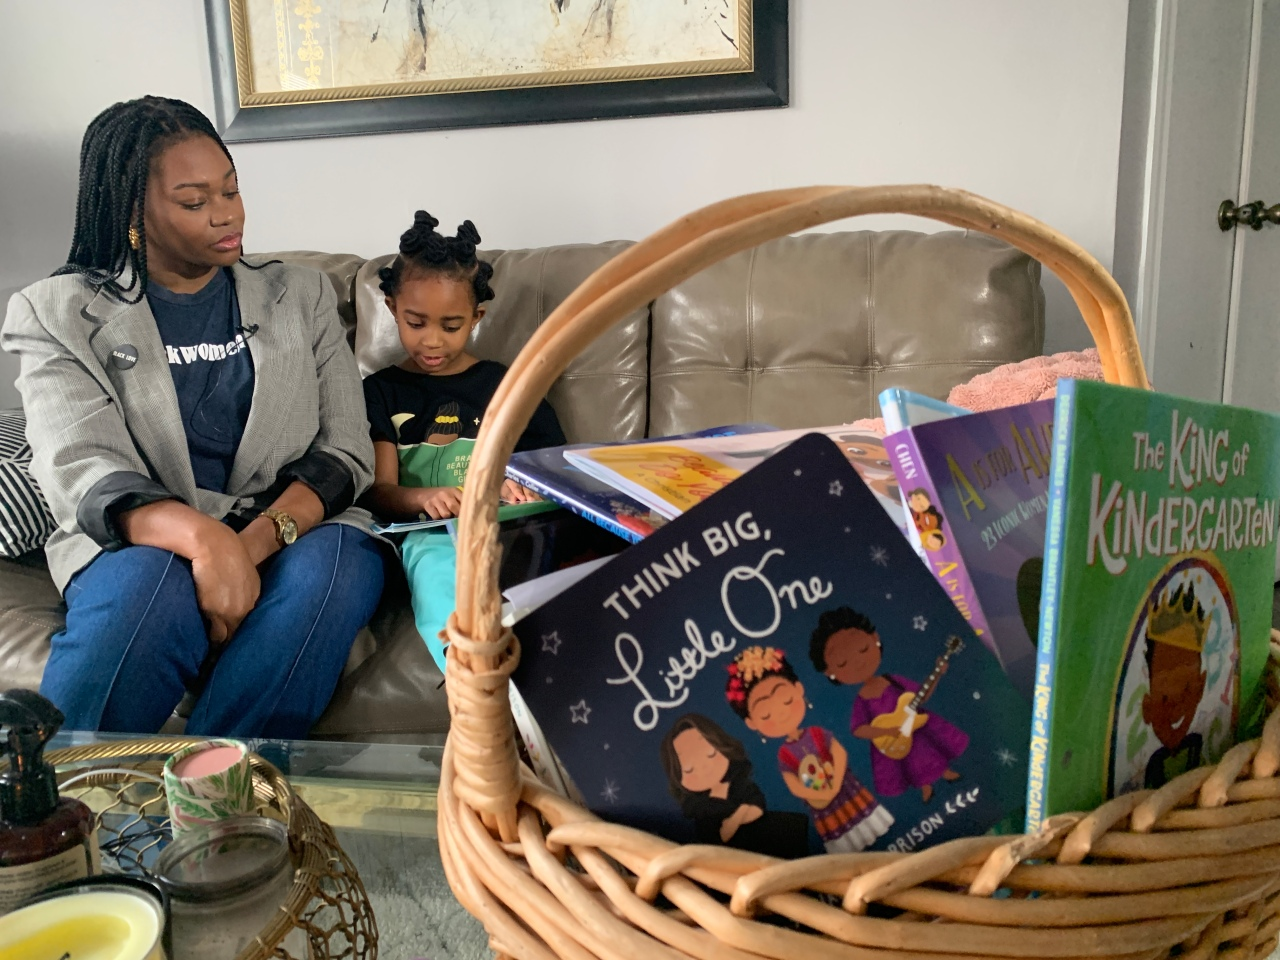 5-year-old launches book drive to promote diversity in school